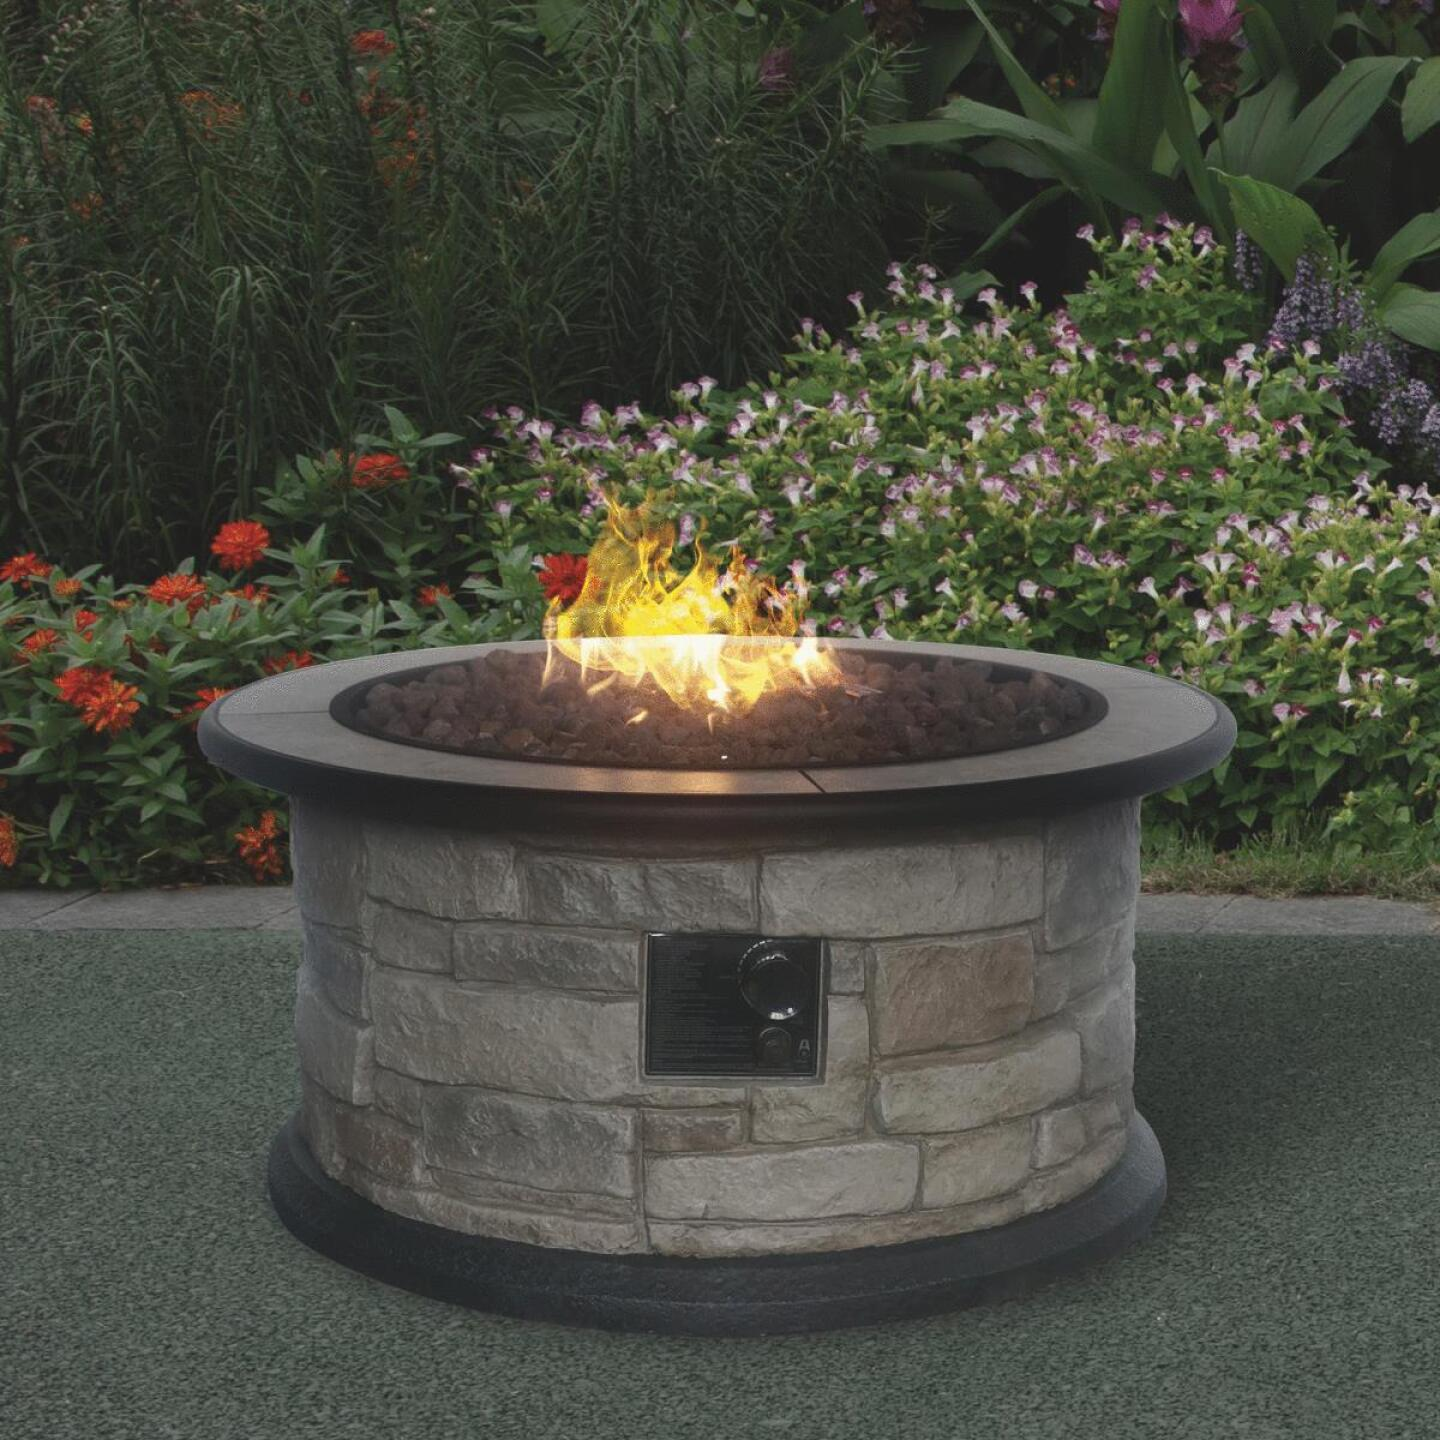 Bond Wellsville 36 In. Round Steel Gas Fire Pit Image 2